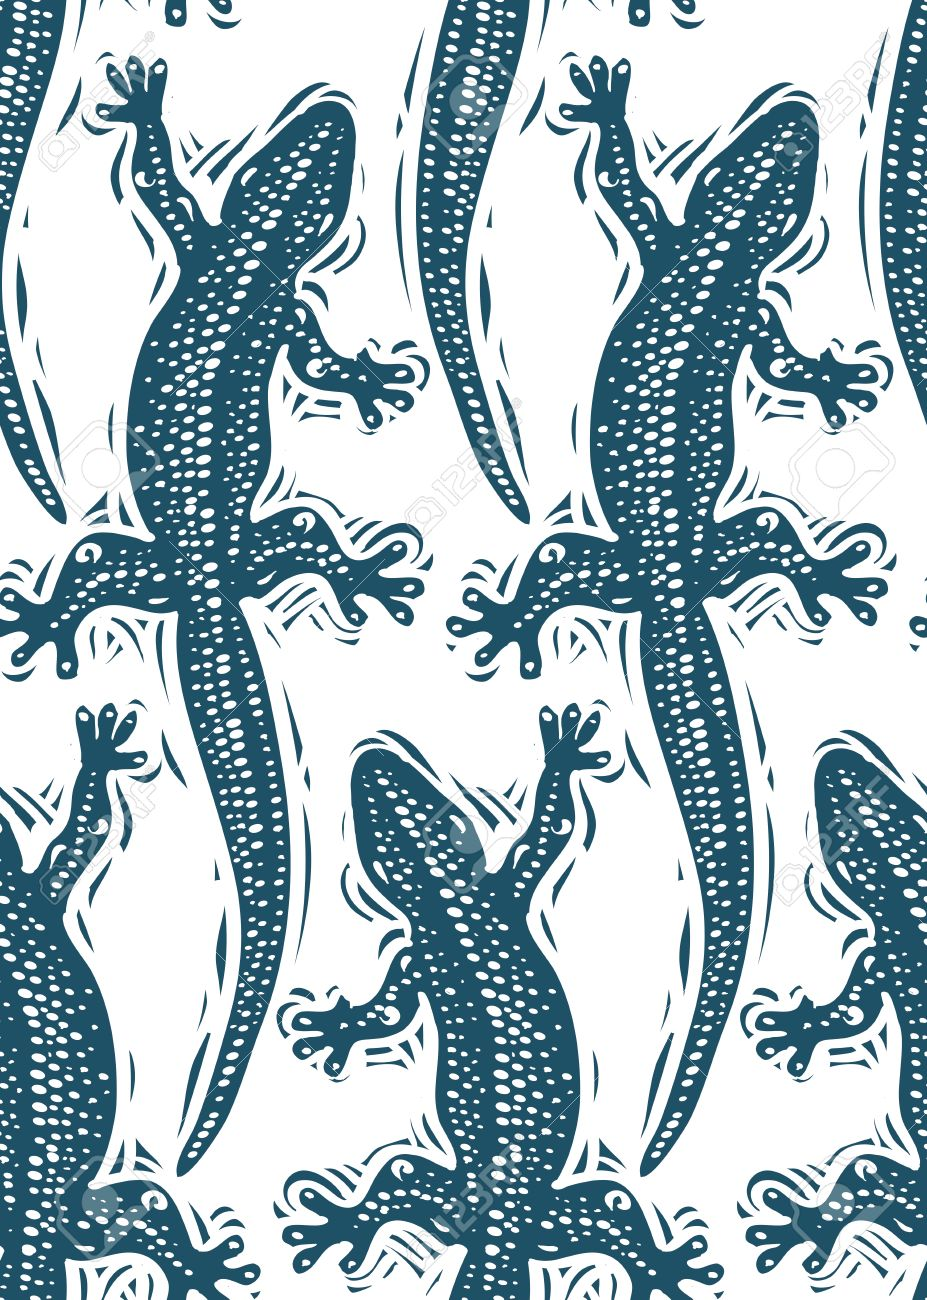 Vector Lizards Wrapping Paper Seamless Pattern With Reptiles 927x1300